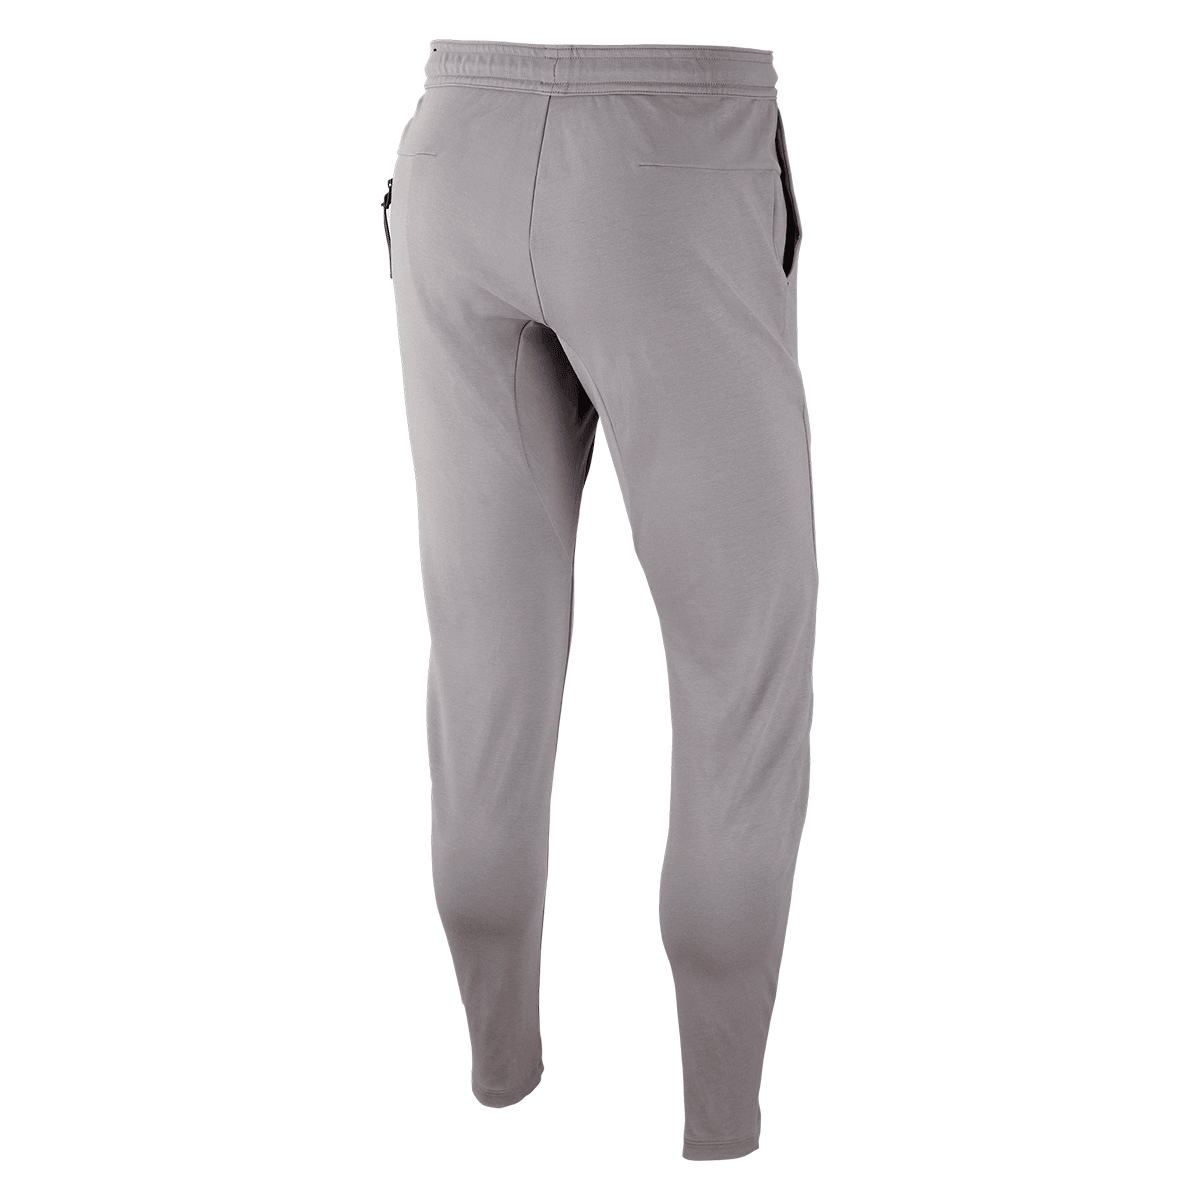 Nike Atlético Madrid Jogginghose Tech Pack Track CL Pant hellgraurot